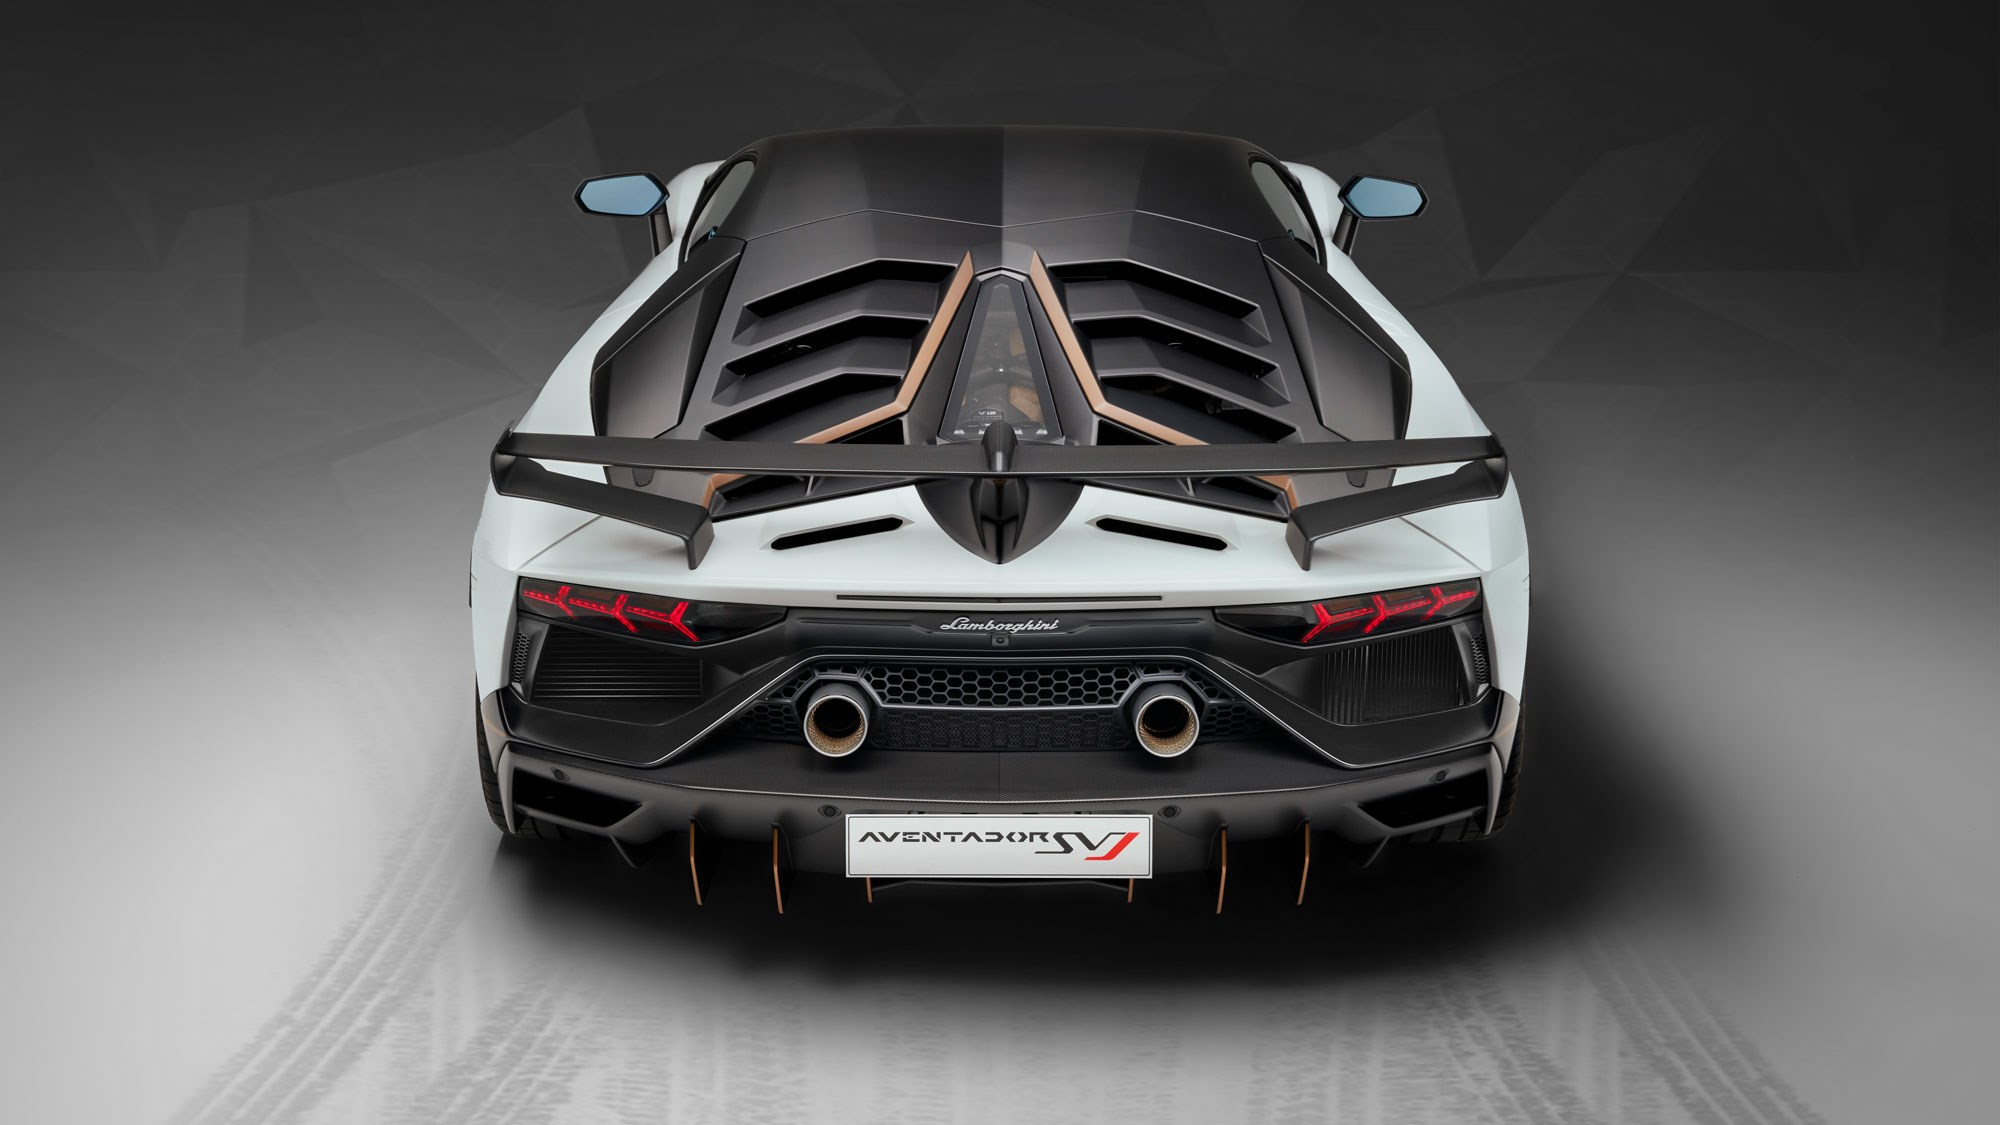 Outrageous 217mph Lamborghini Aventador Svj Roadster Chops Its Top